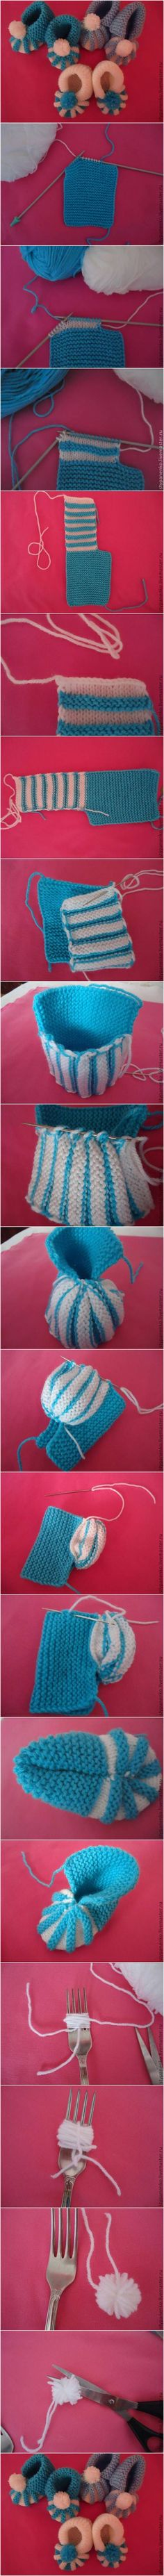 How to DIY Cute Pom-pom Decorated Knitted Baby Booties